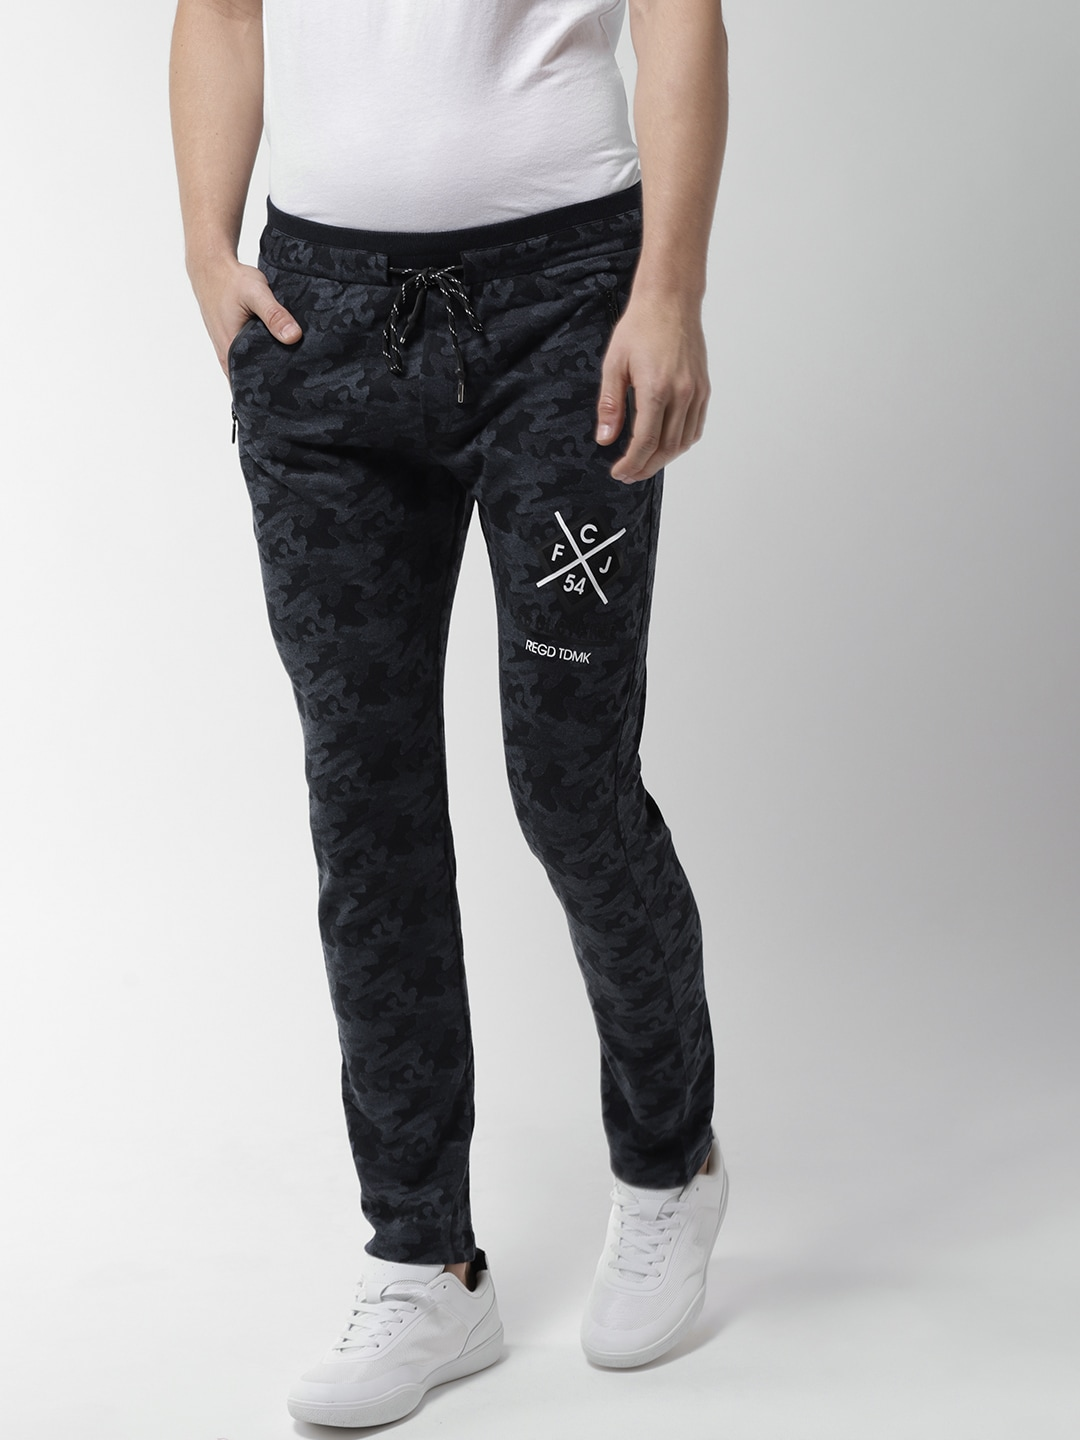 cf565b87154 Sports Navy Blue Blue Track Pants Pants - Buy Sports Navy Blue Blue Track  Pants Pants online in India